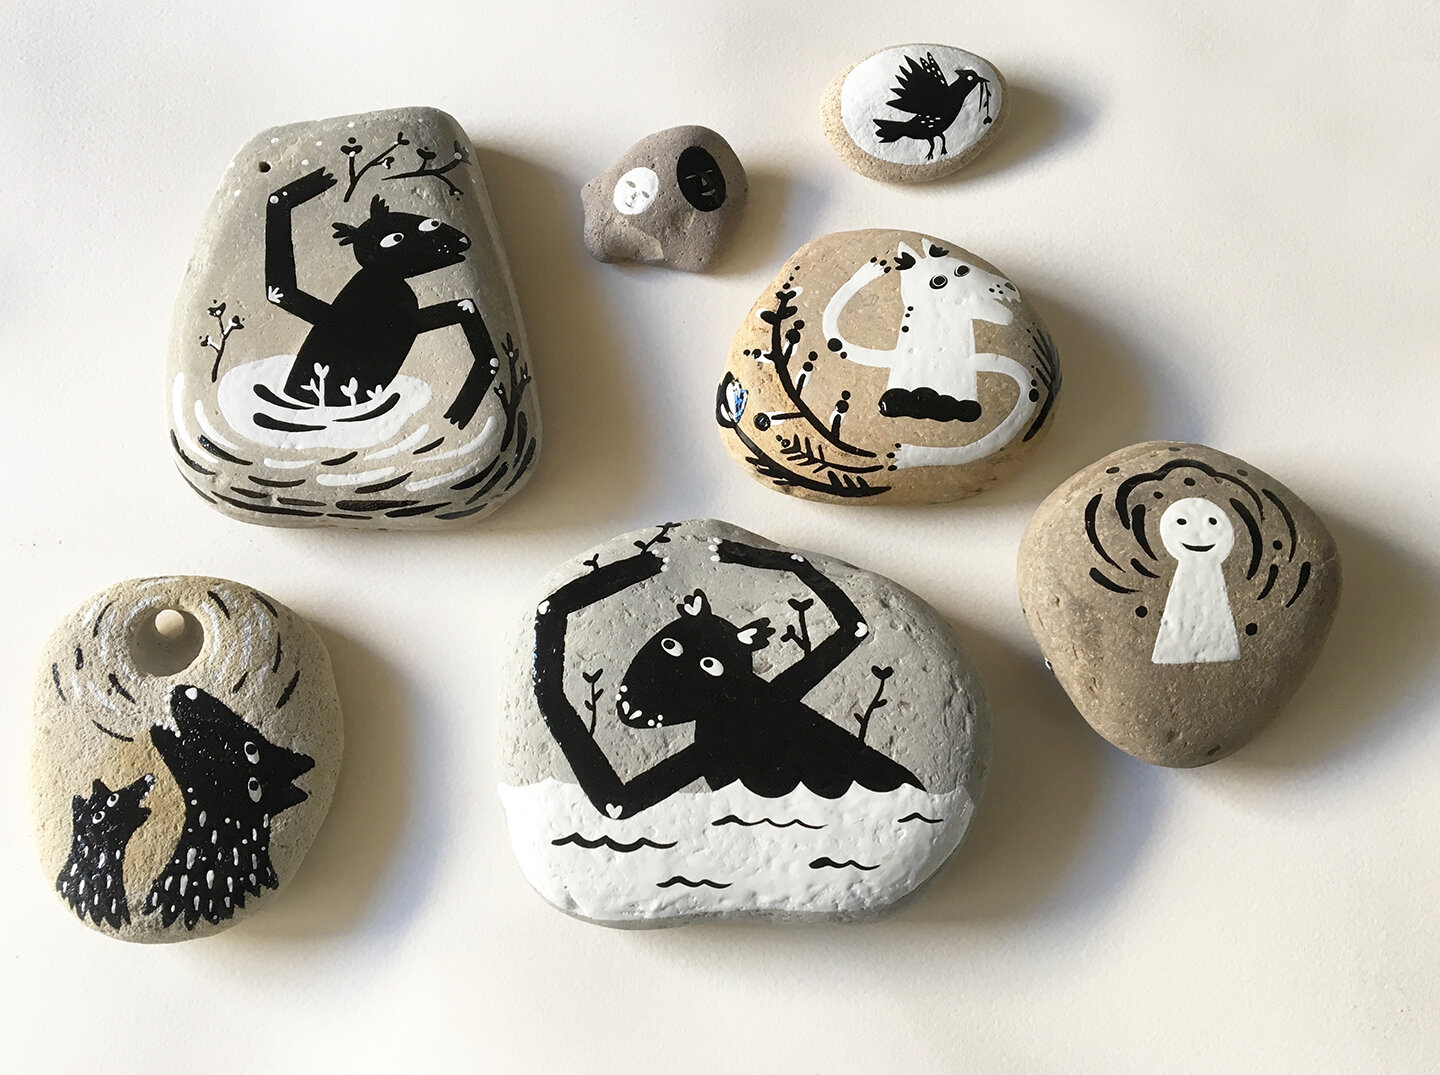 Protection Stones  - 2019, sign painter's enamel on beach rocks, various sizes - private collection - some available on  superhumanspirit.com